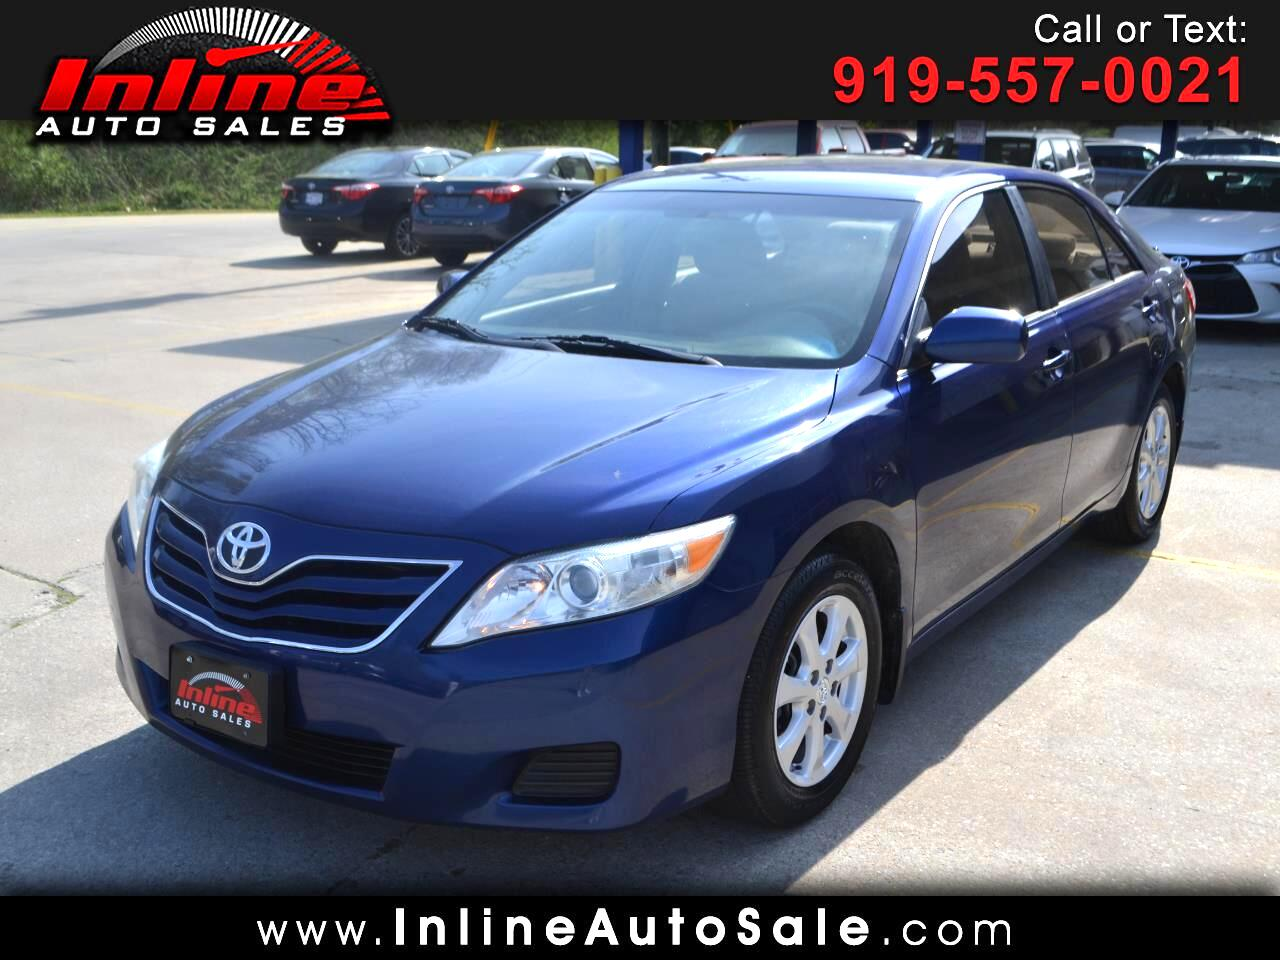 Toyota Camry 4dr Sdn I4 Man LE (Natl) 2010